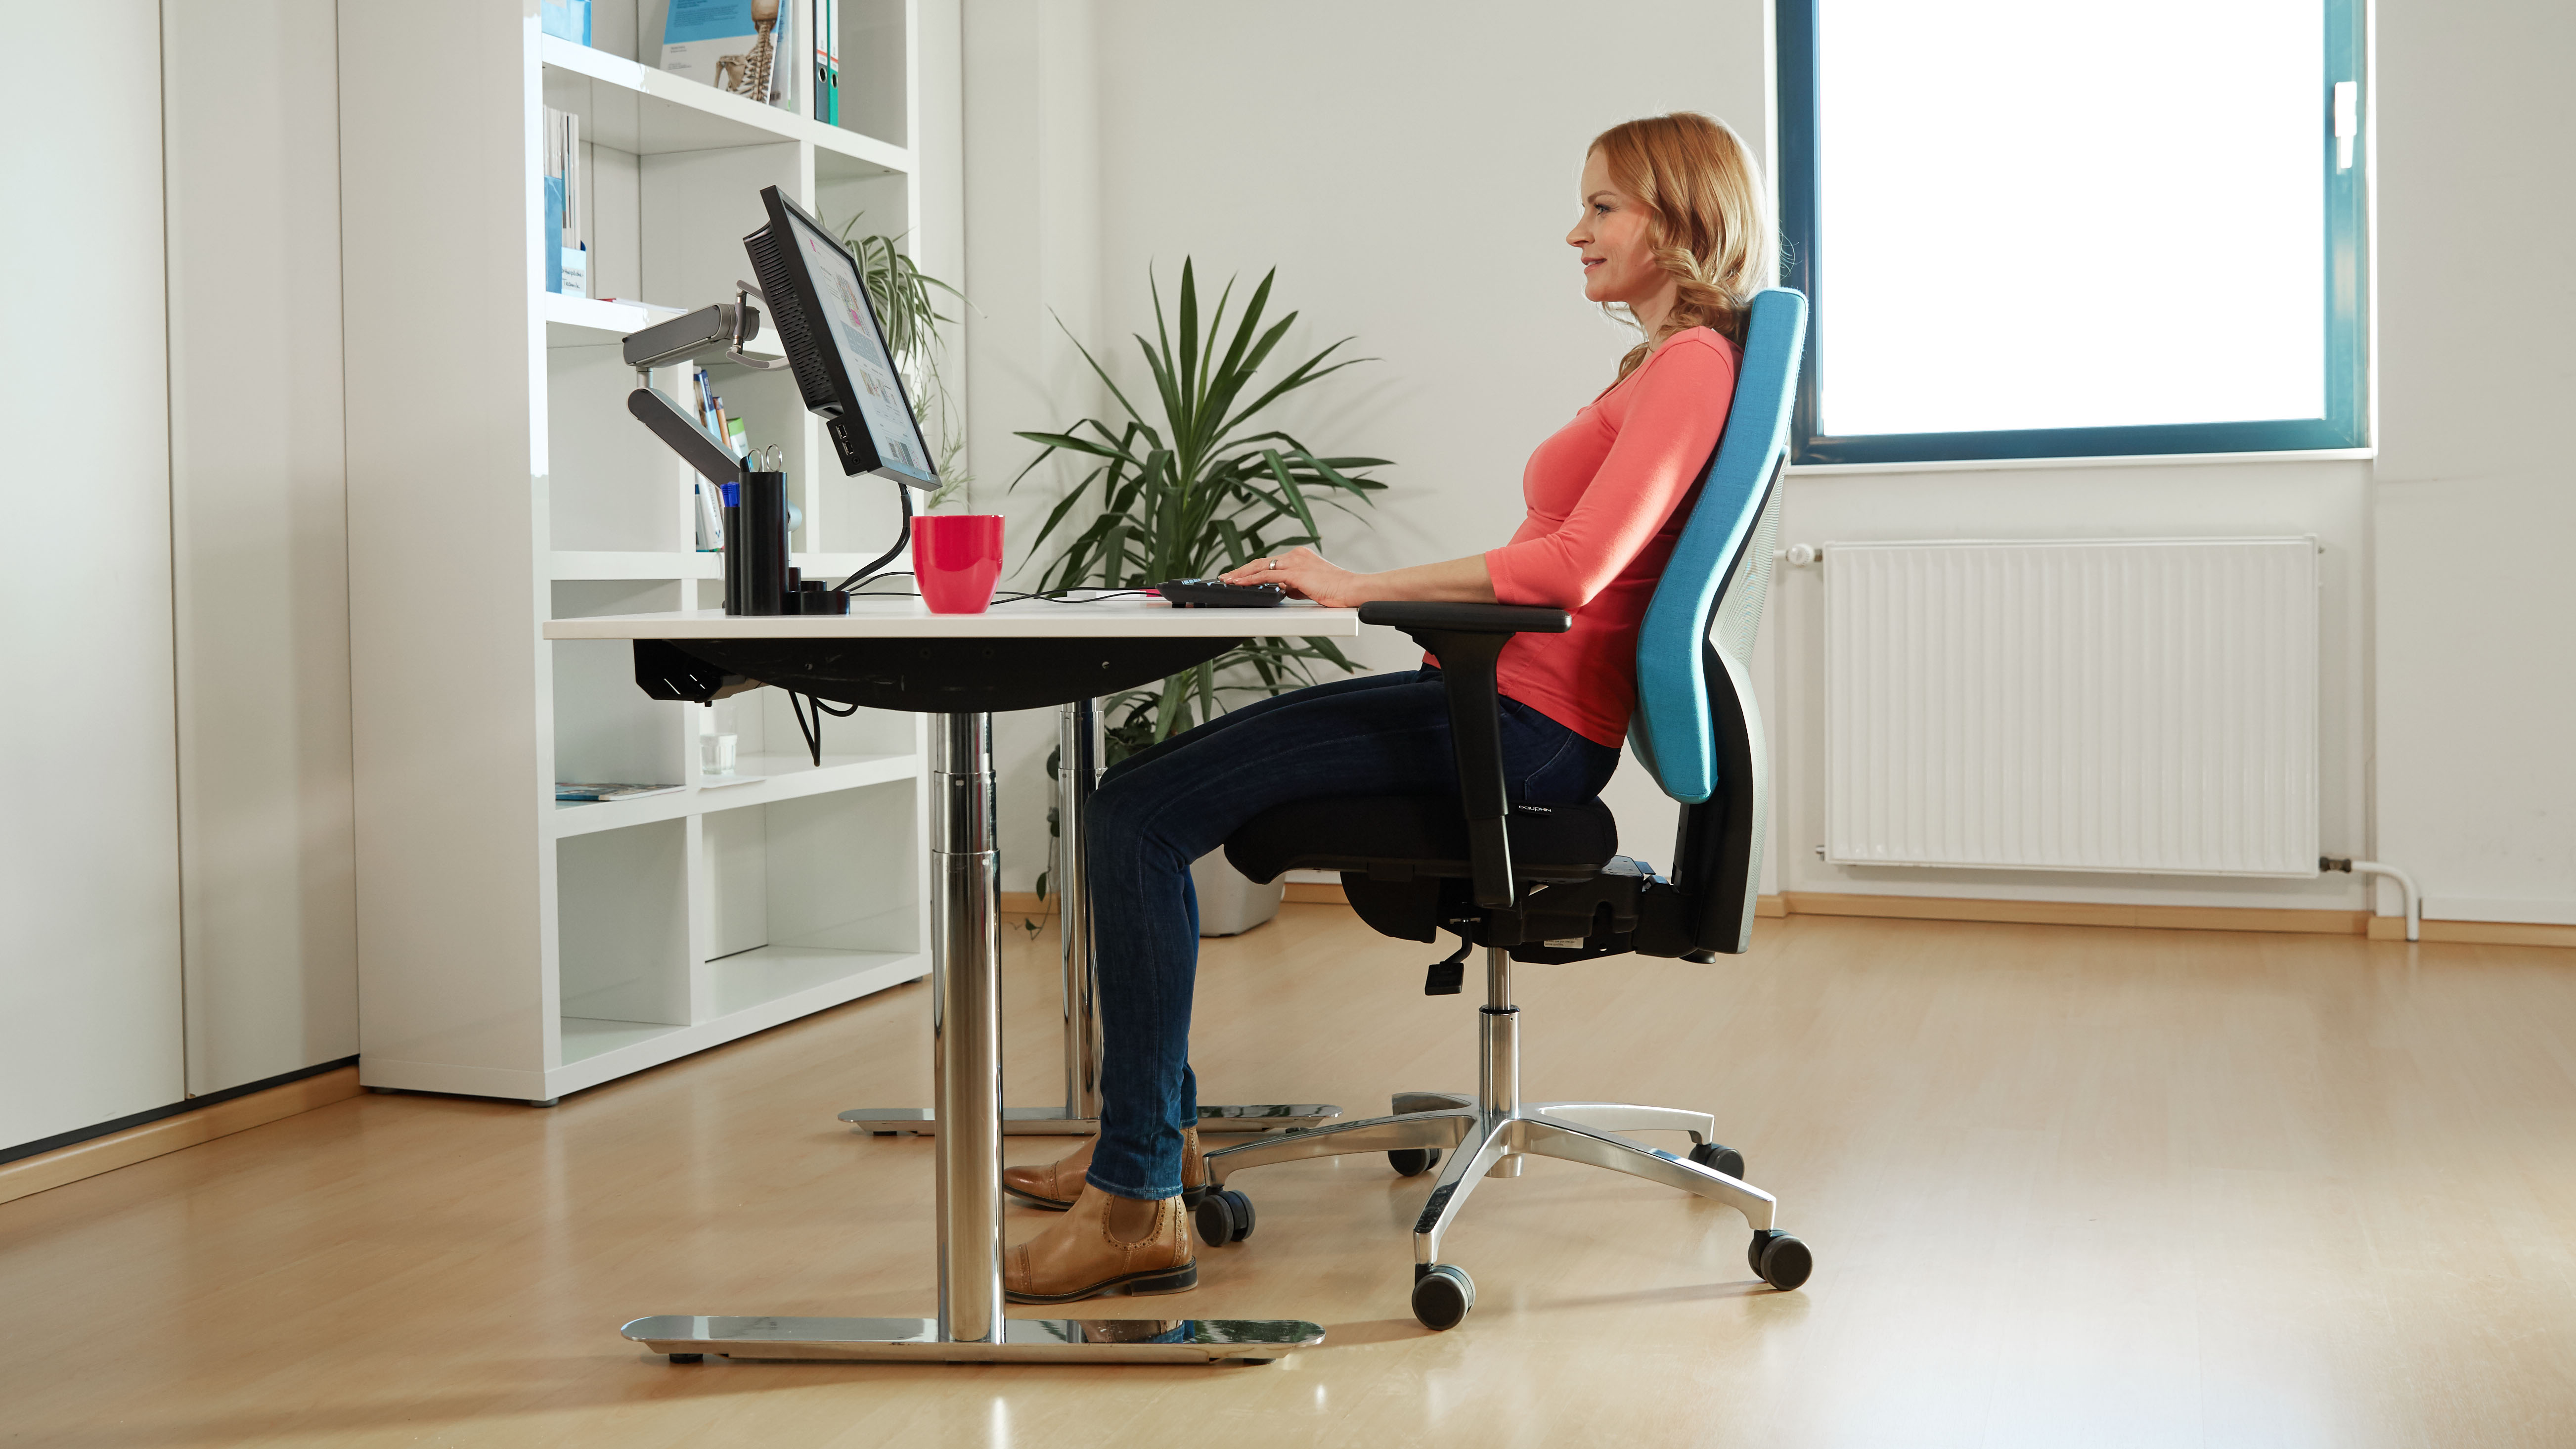 one ballo at sitting exercise of desk workouts the office deskercise capture die while business or